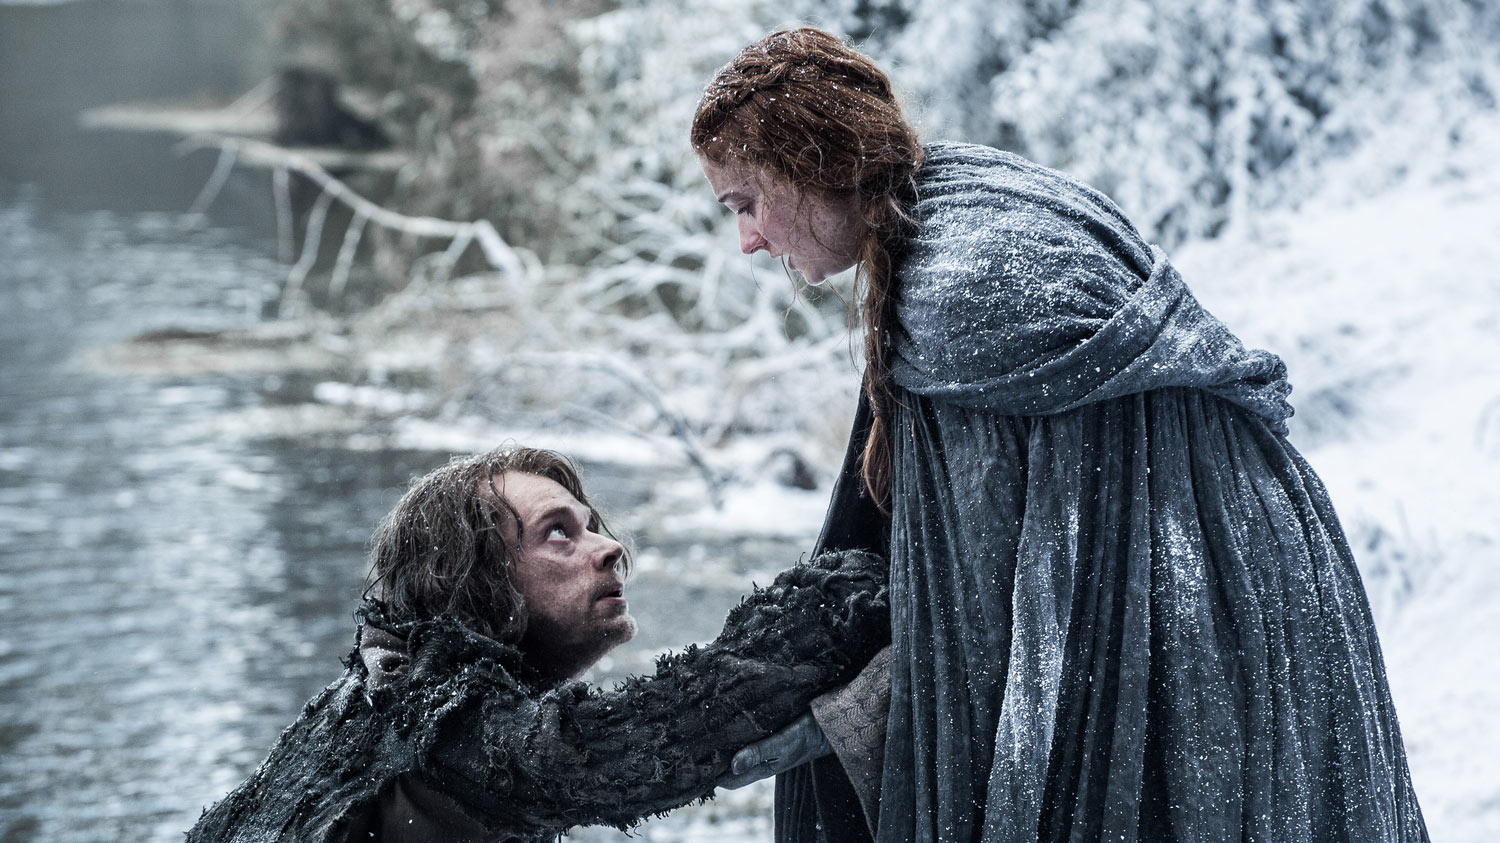 Two characters from HBO's fantasy epic Game of Thrones, Theon Greyjoy and Sansa Stark. (HBO)